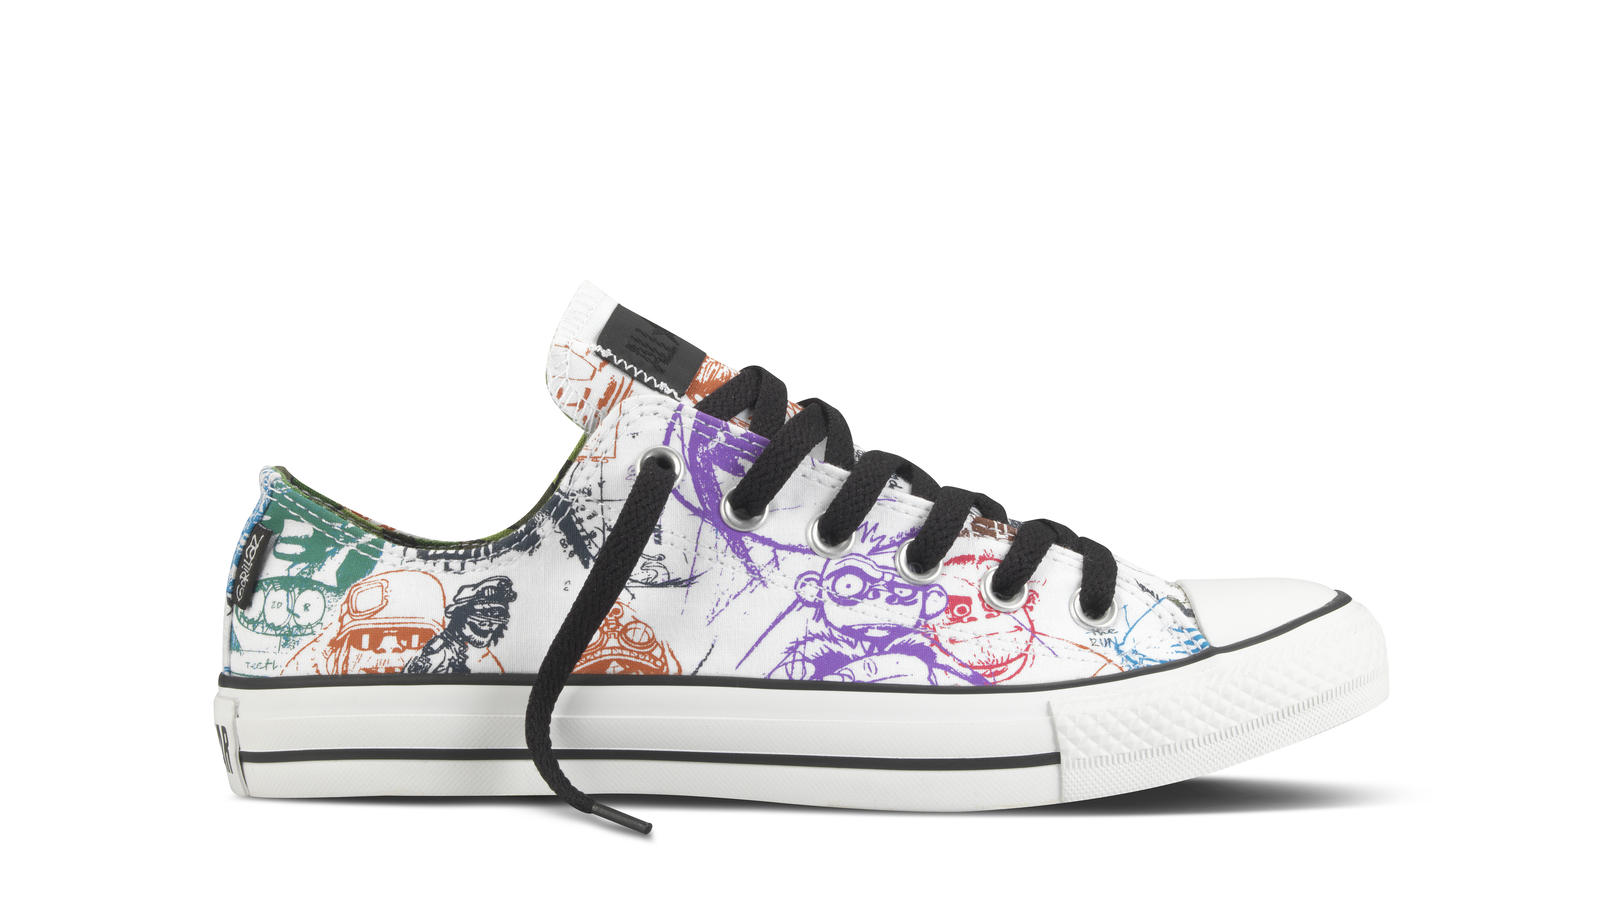 0151b11f9c57 Converse Unveils Spring 2012 Footwear Collection With Virtual Band ...